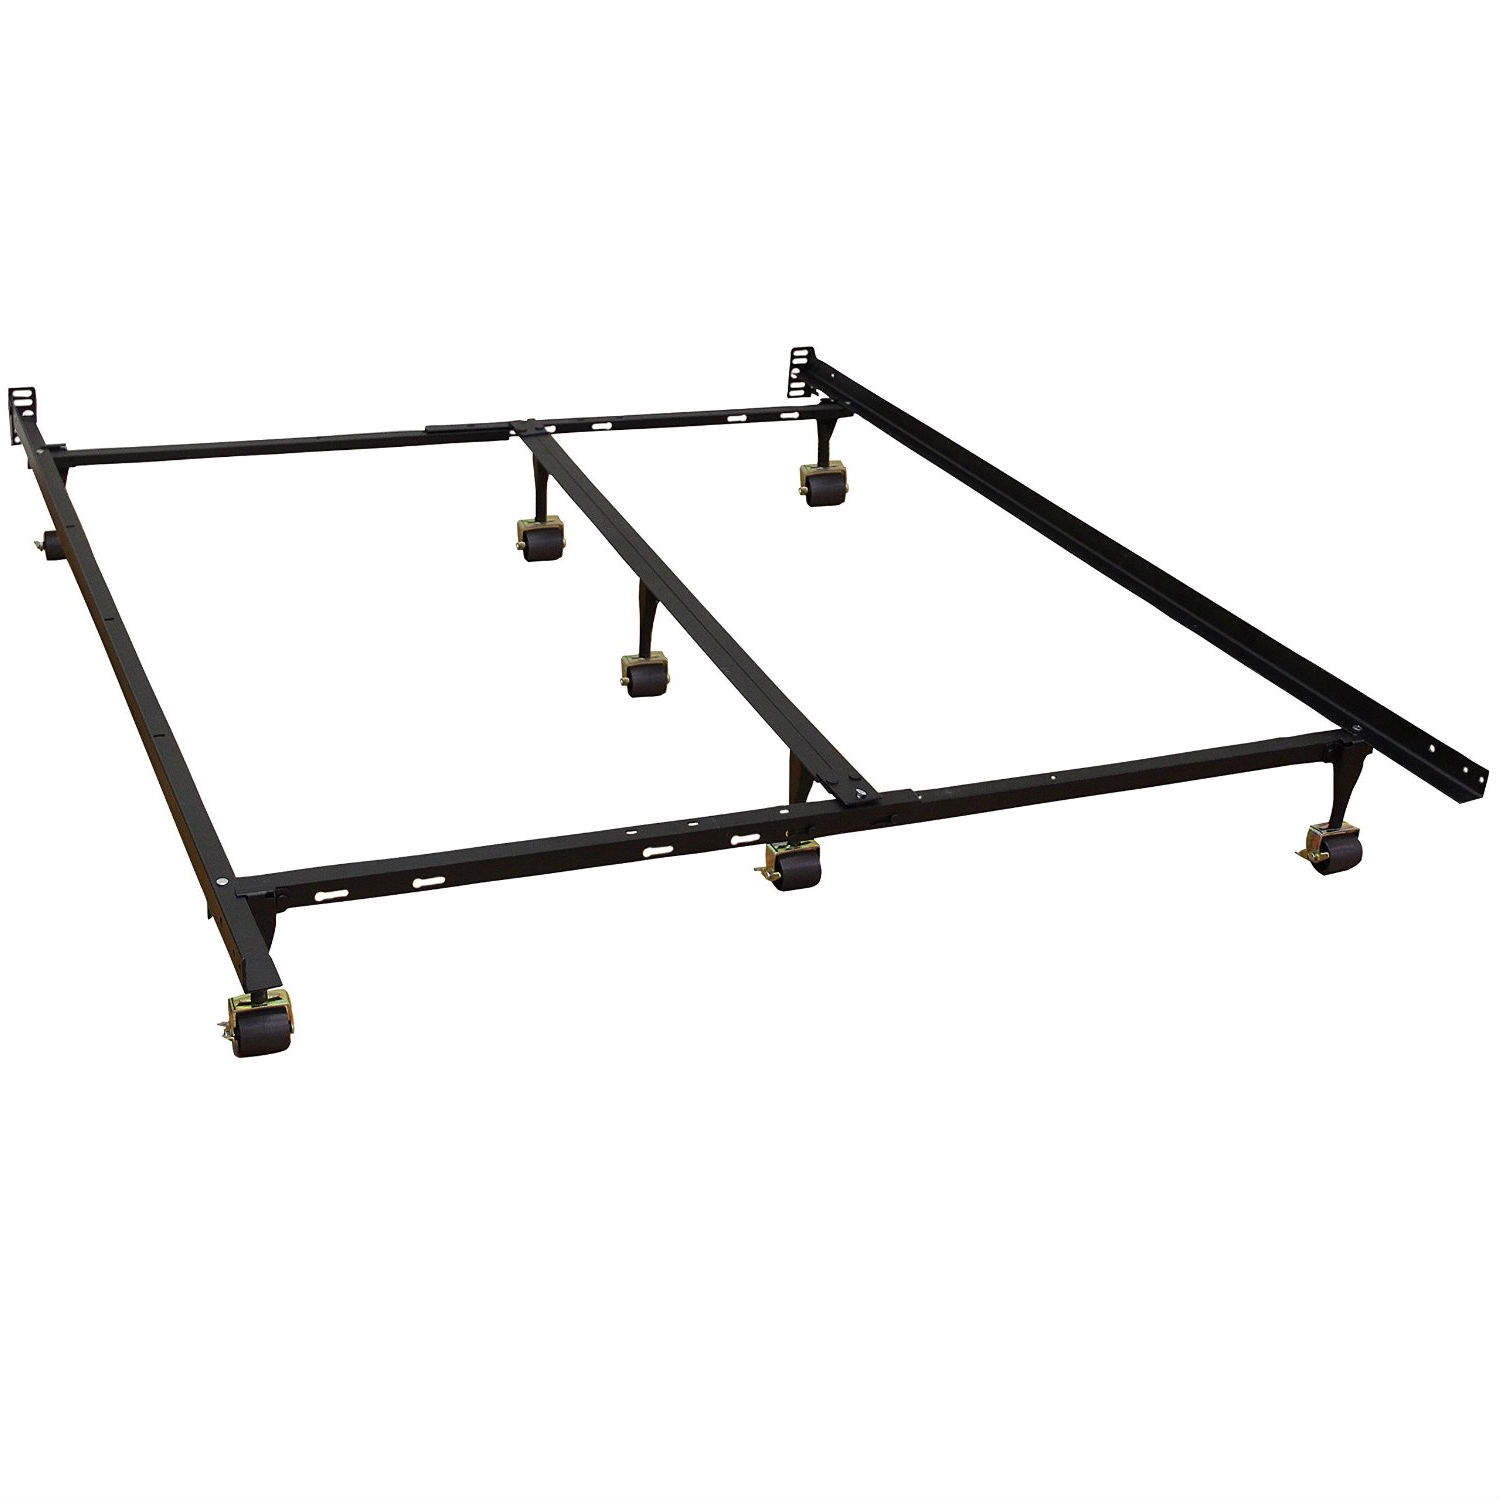 Full Size Sturdy Metal Bed Frame With 7 Legs Locking Casters And